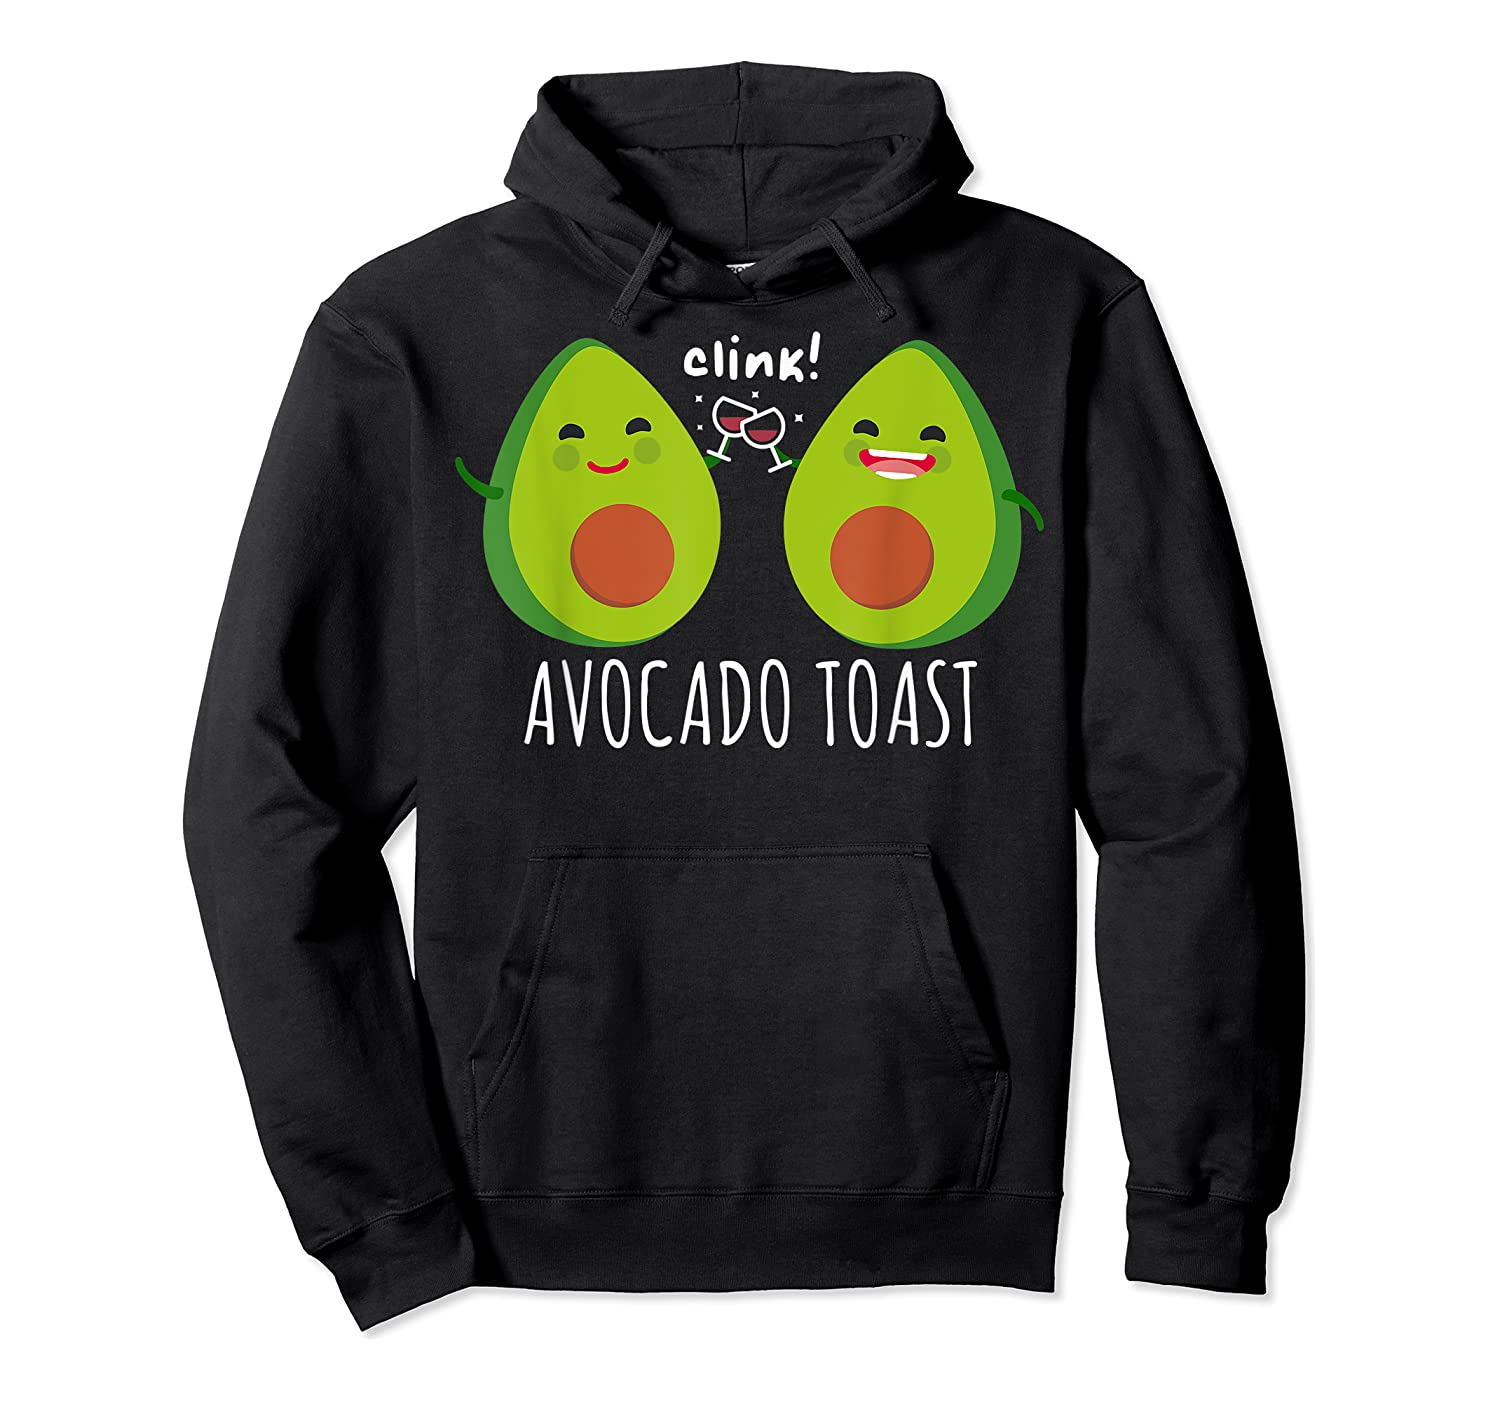 Cute Toast For Trendy Millennials Shirts Unisex Pullover Hoodie